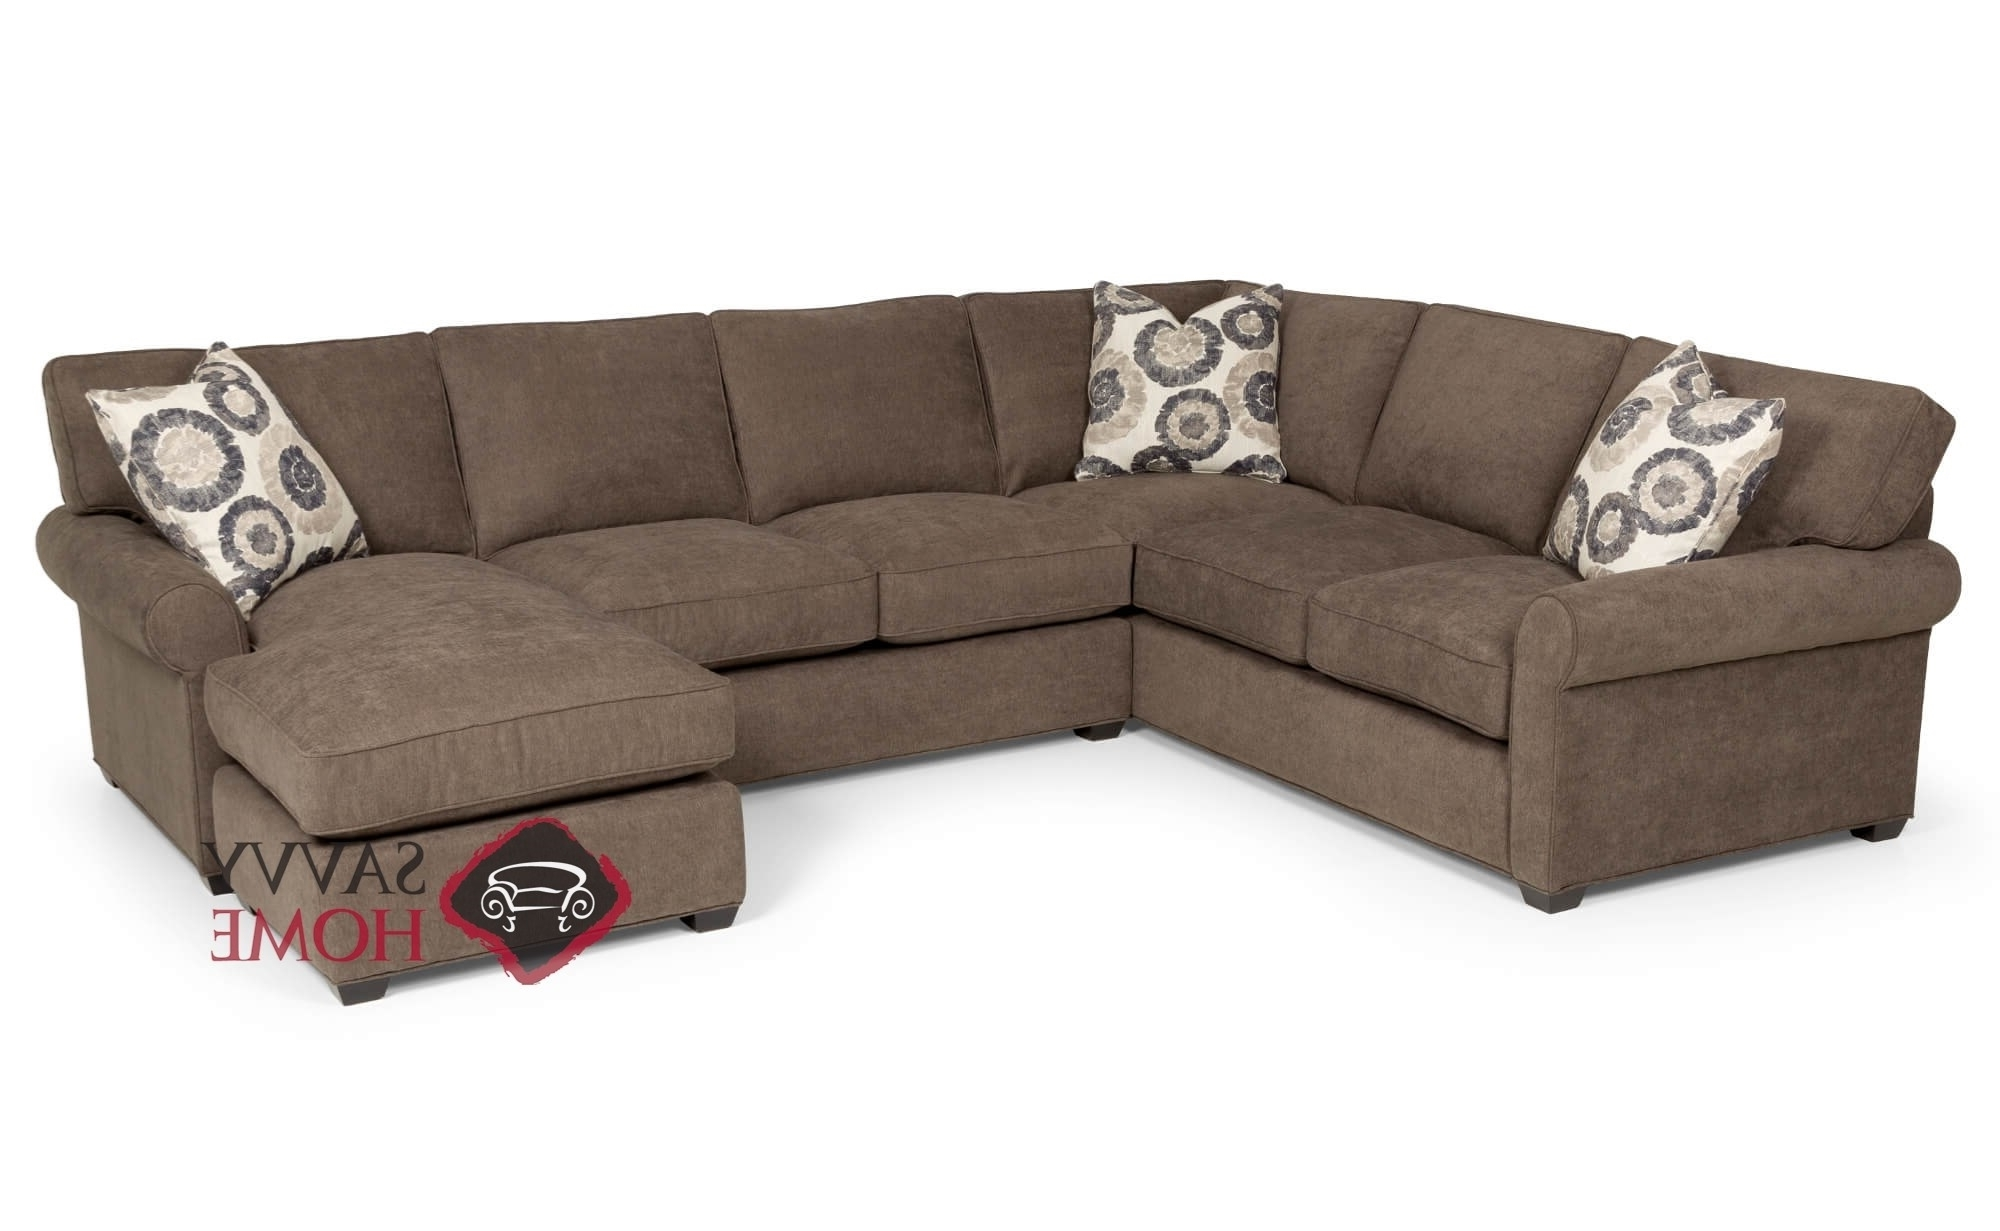 Fashionable 225 Fabric True Sectionalstanton Is Fully Customizableyou Inside Seattle Sectional Sofas (View 5 of 15)